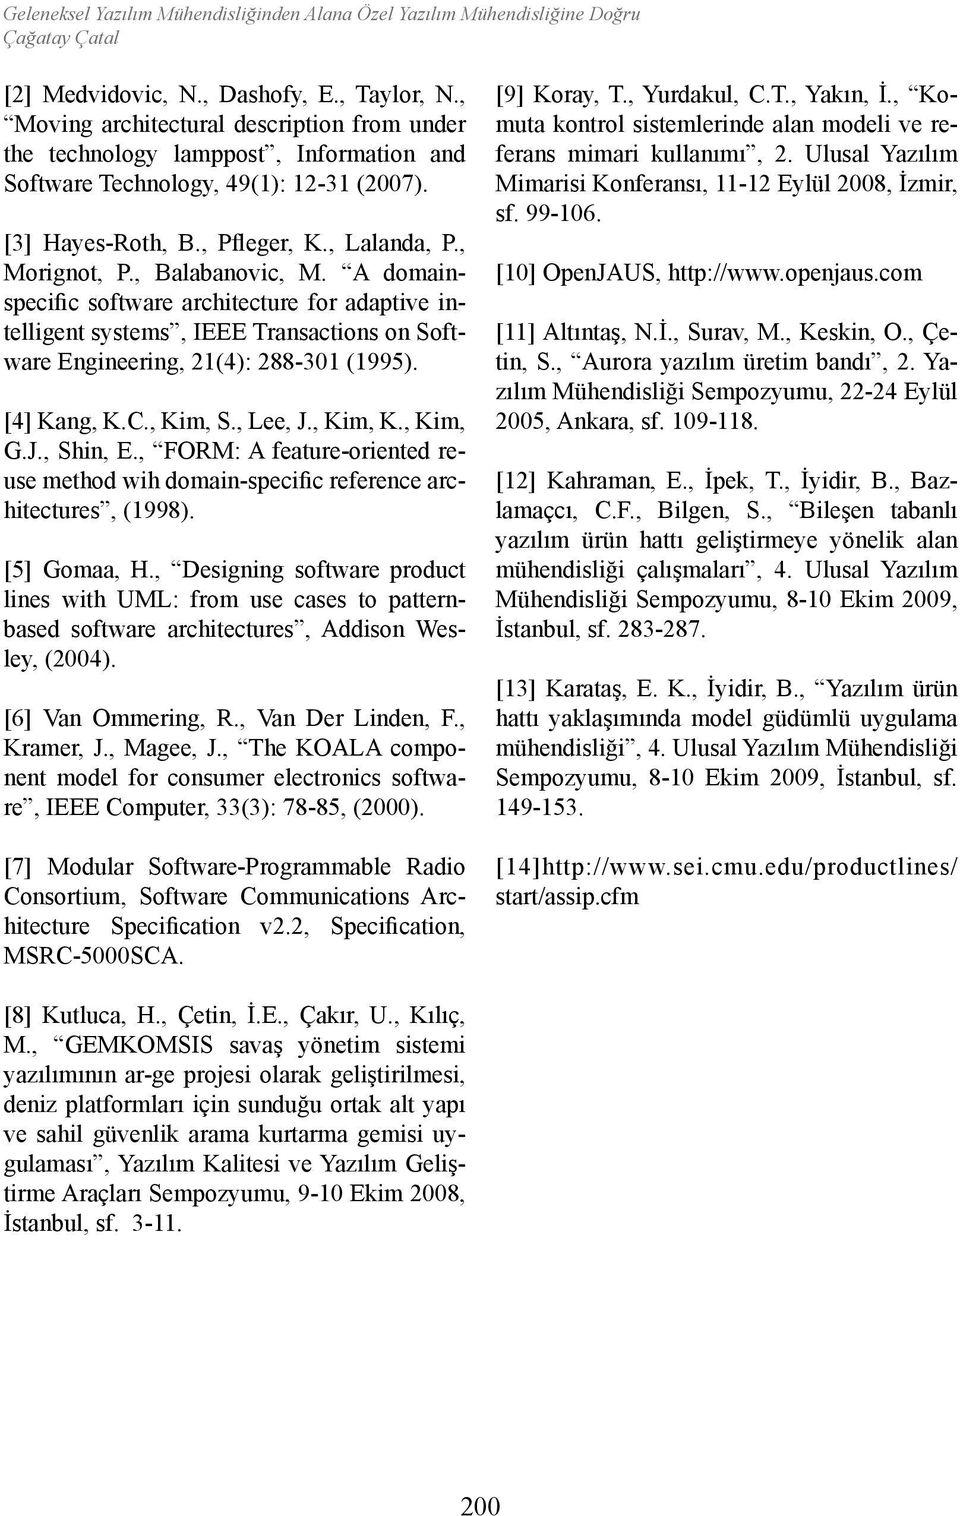 , Balabanovic, M. A domainspecific software architecture for adaptive intelligent systems, IEEE Transactions on Software Engineering, 21(4): 288-301 (1995). [4] Kang, K.C., Kim, S., Lee, J., Kim, K.